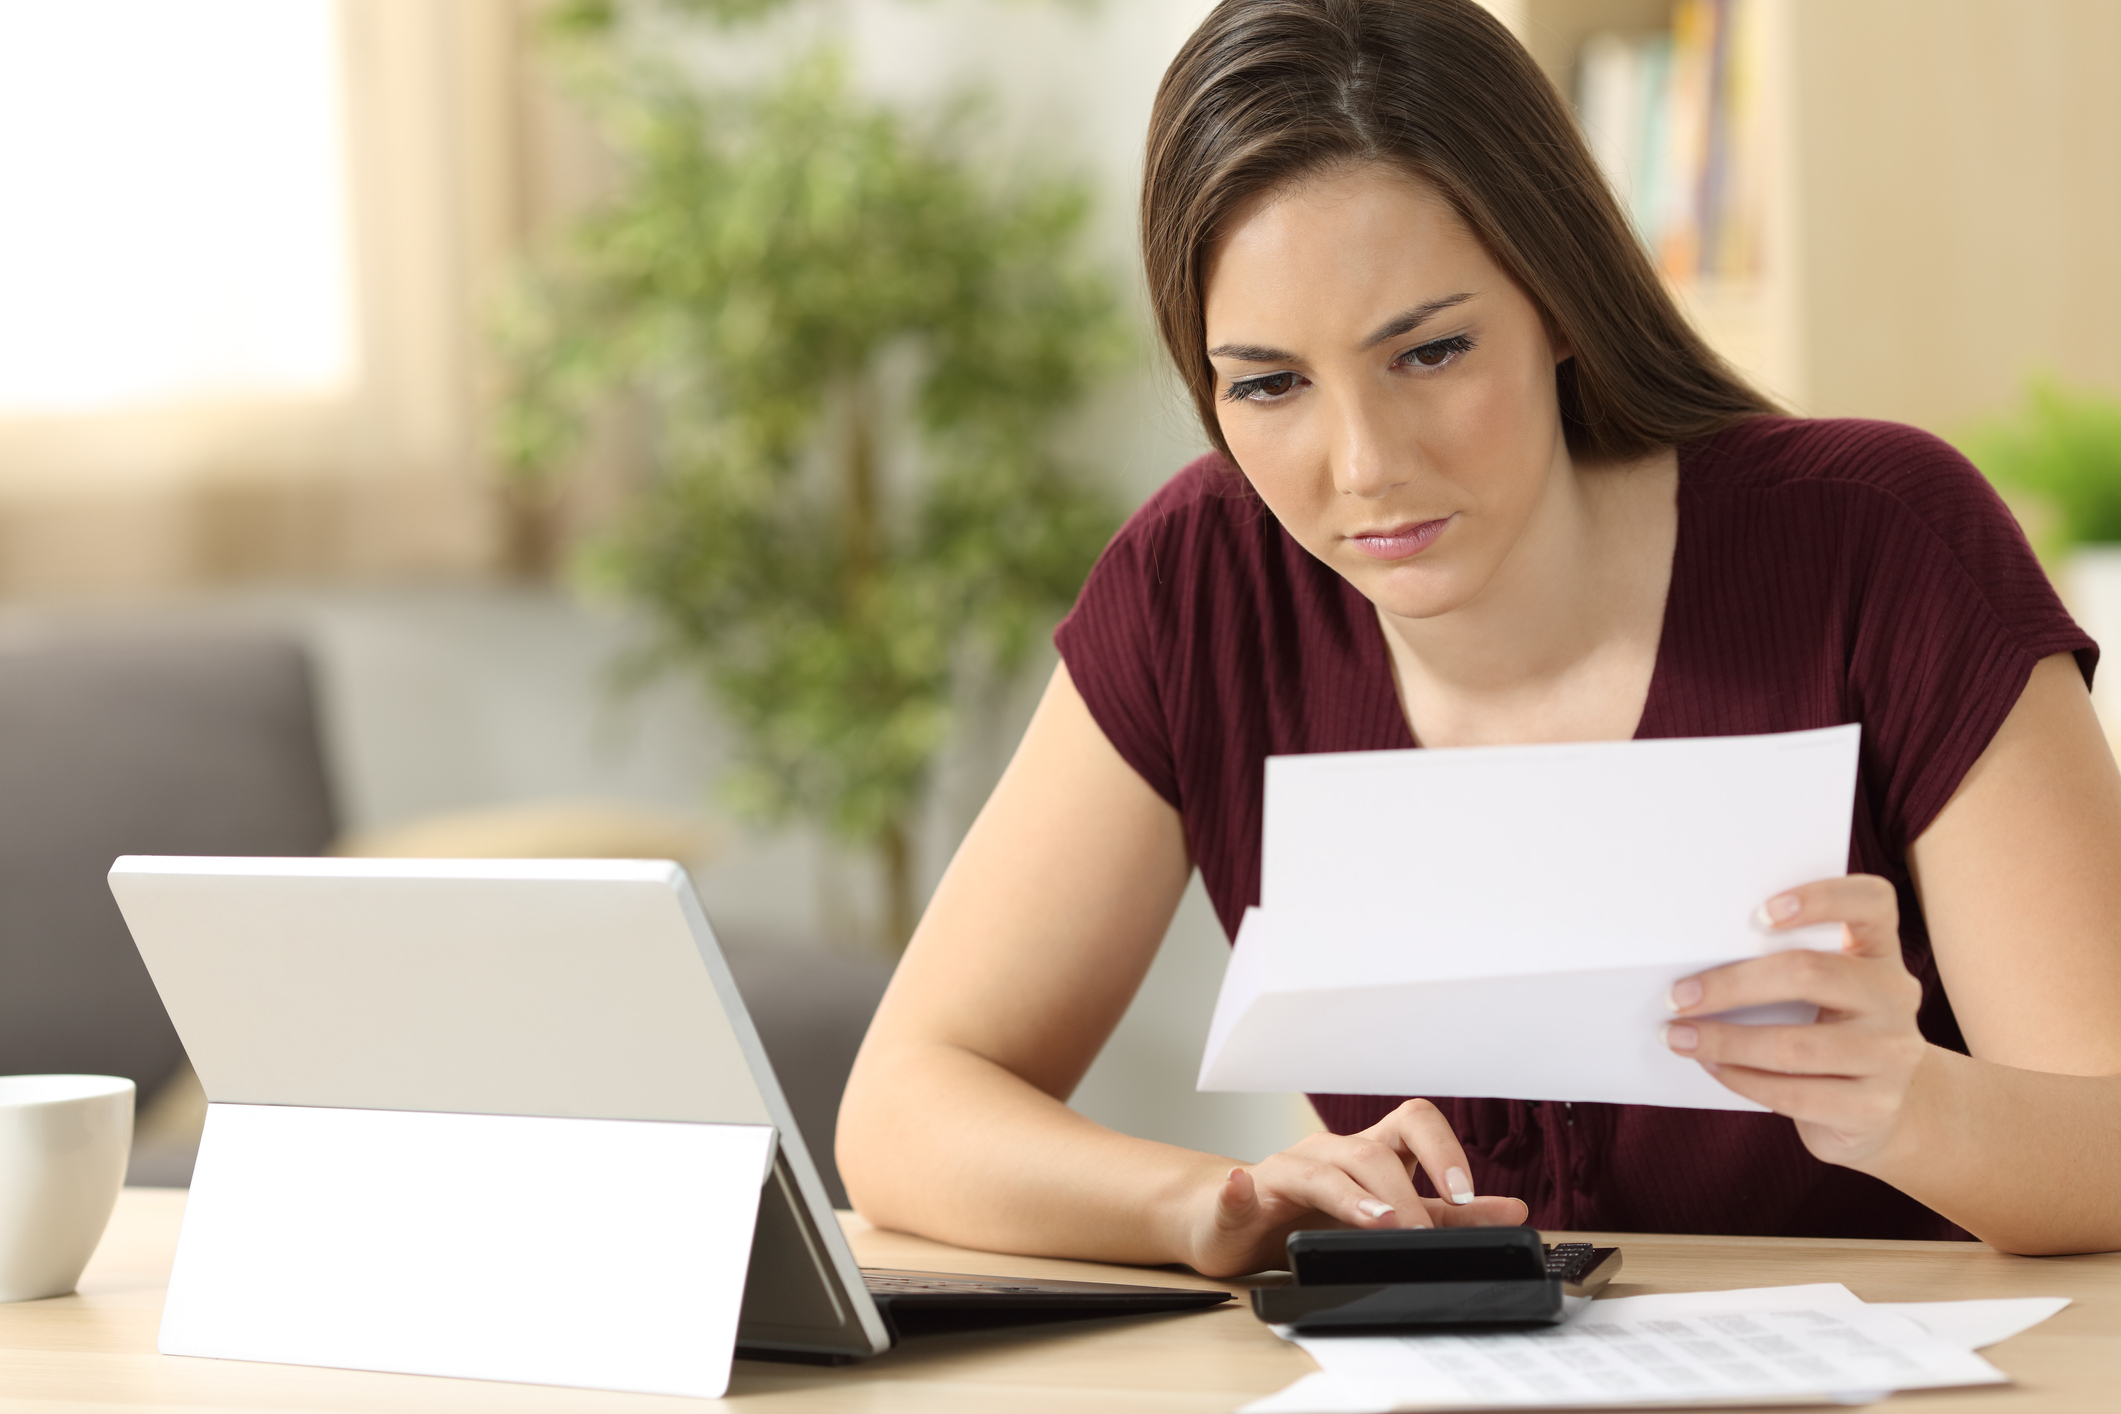 woman-looking-at-document_gettyimages-833135726.jpg